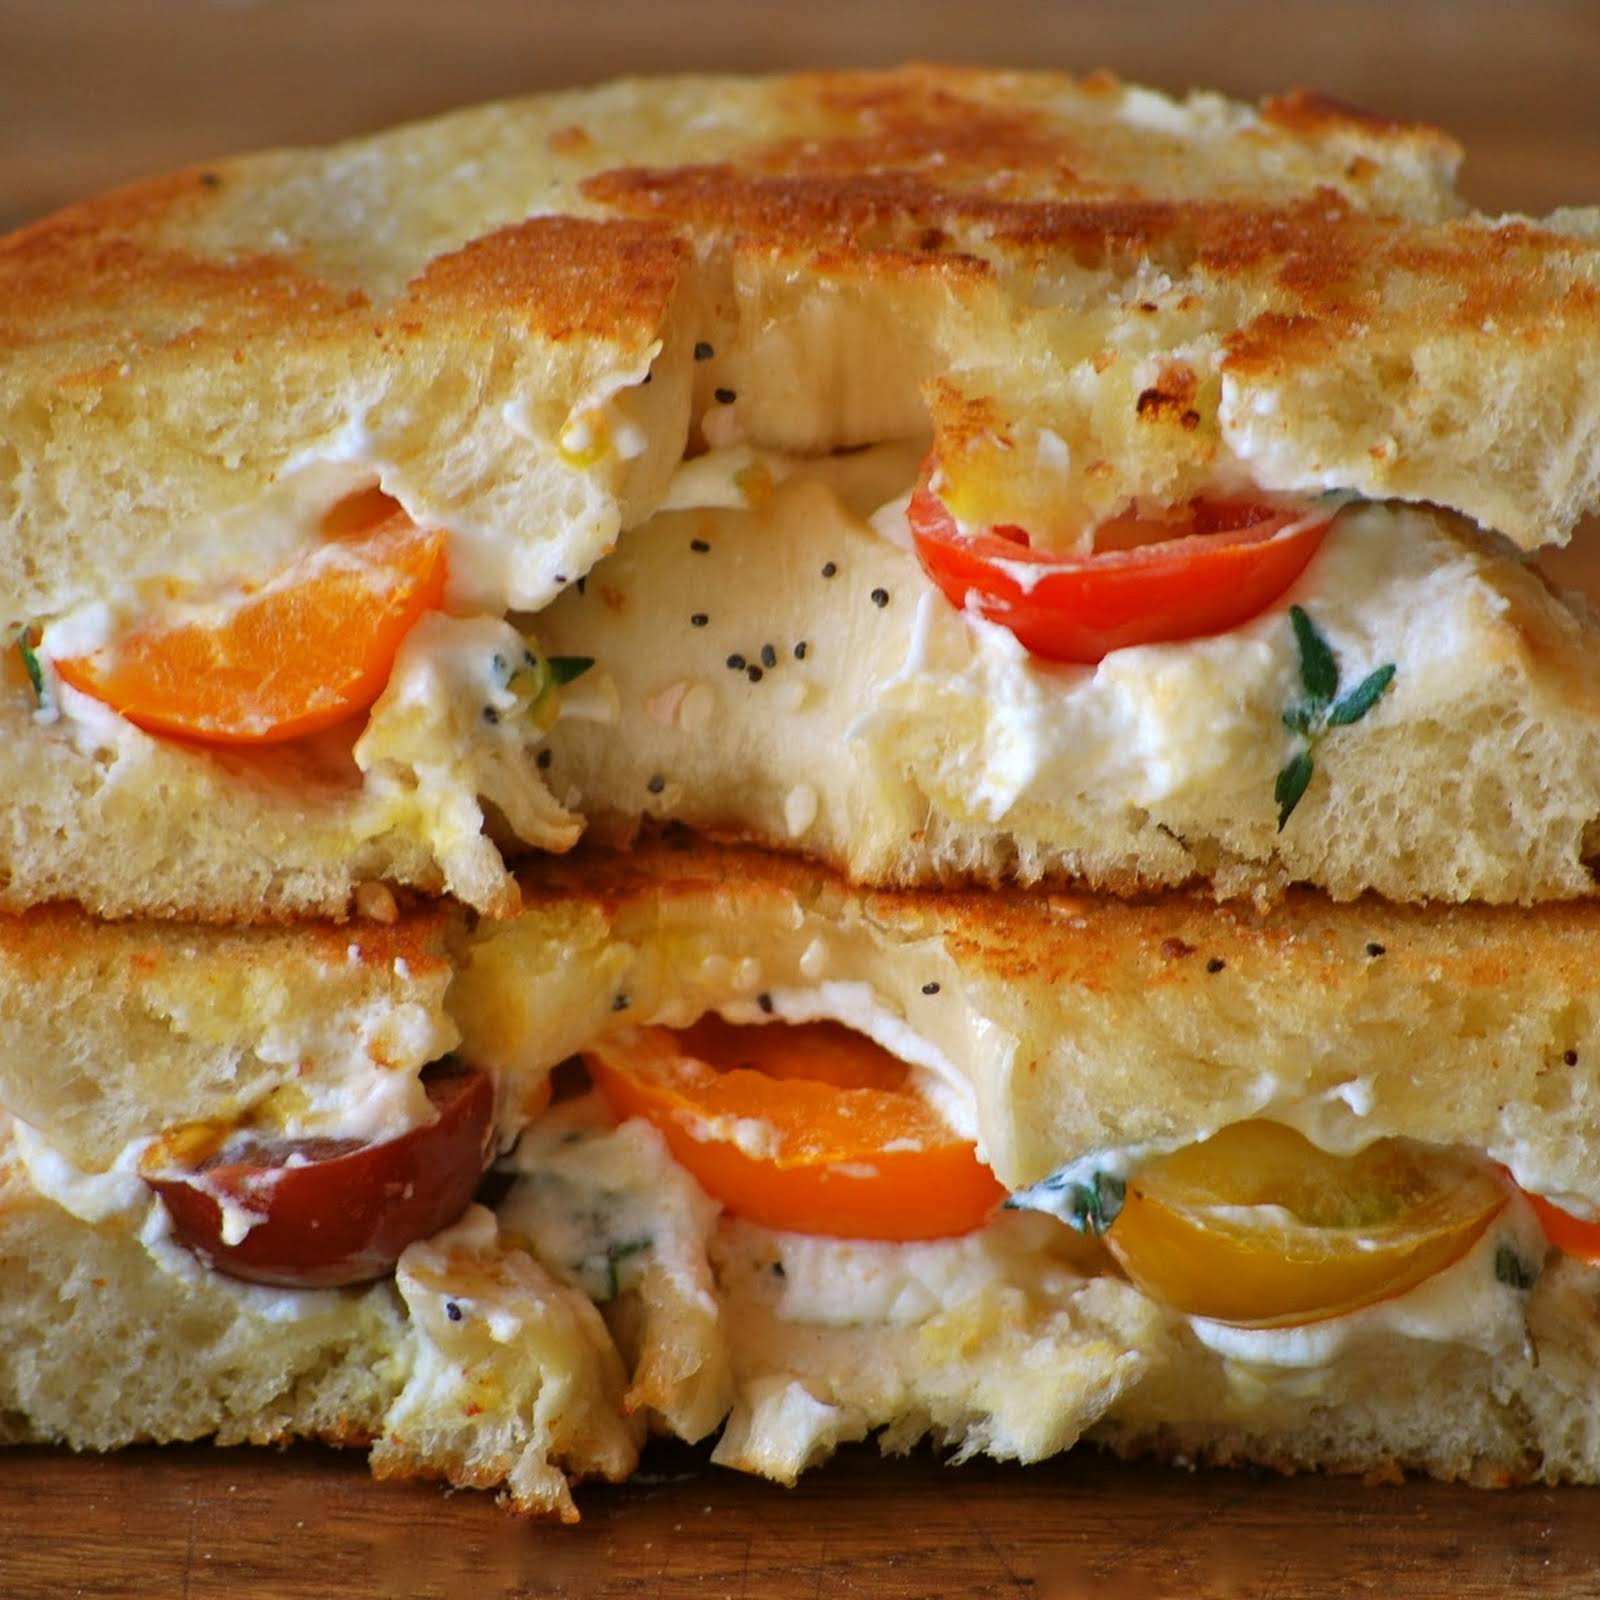 Team Cream – Bagel Grilled Cheese with Heirloom Tomatoes and Thyme Cream Cheese